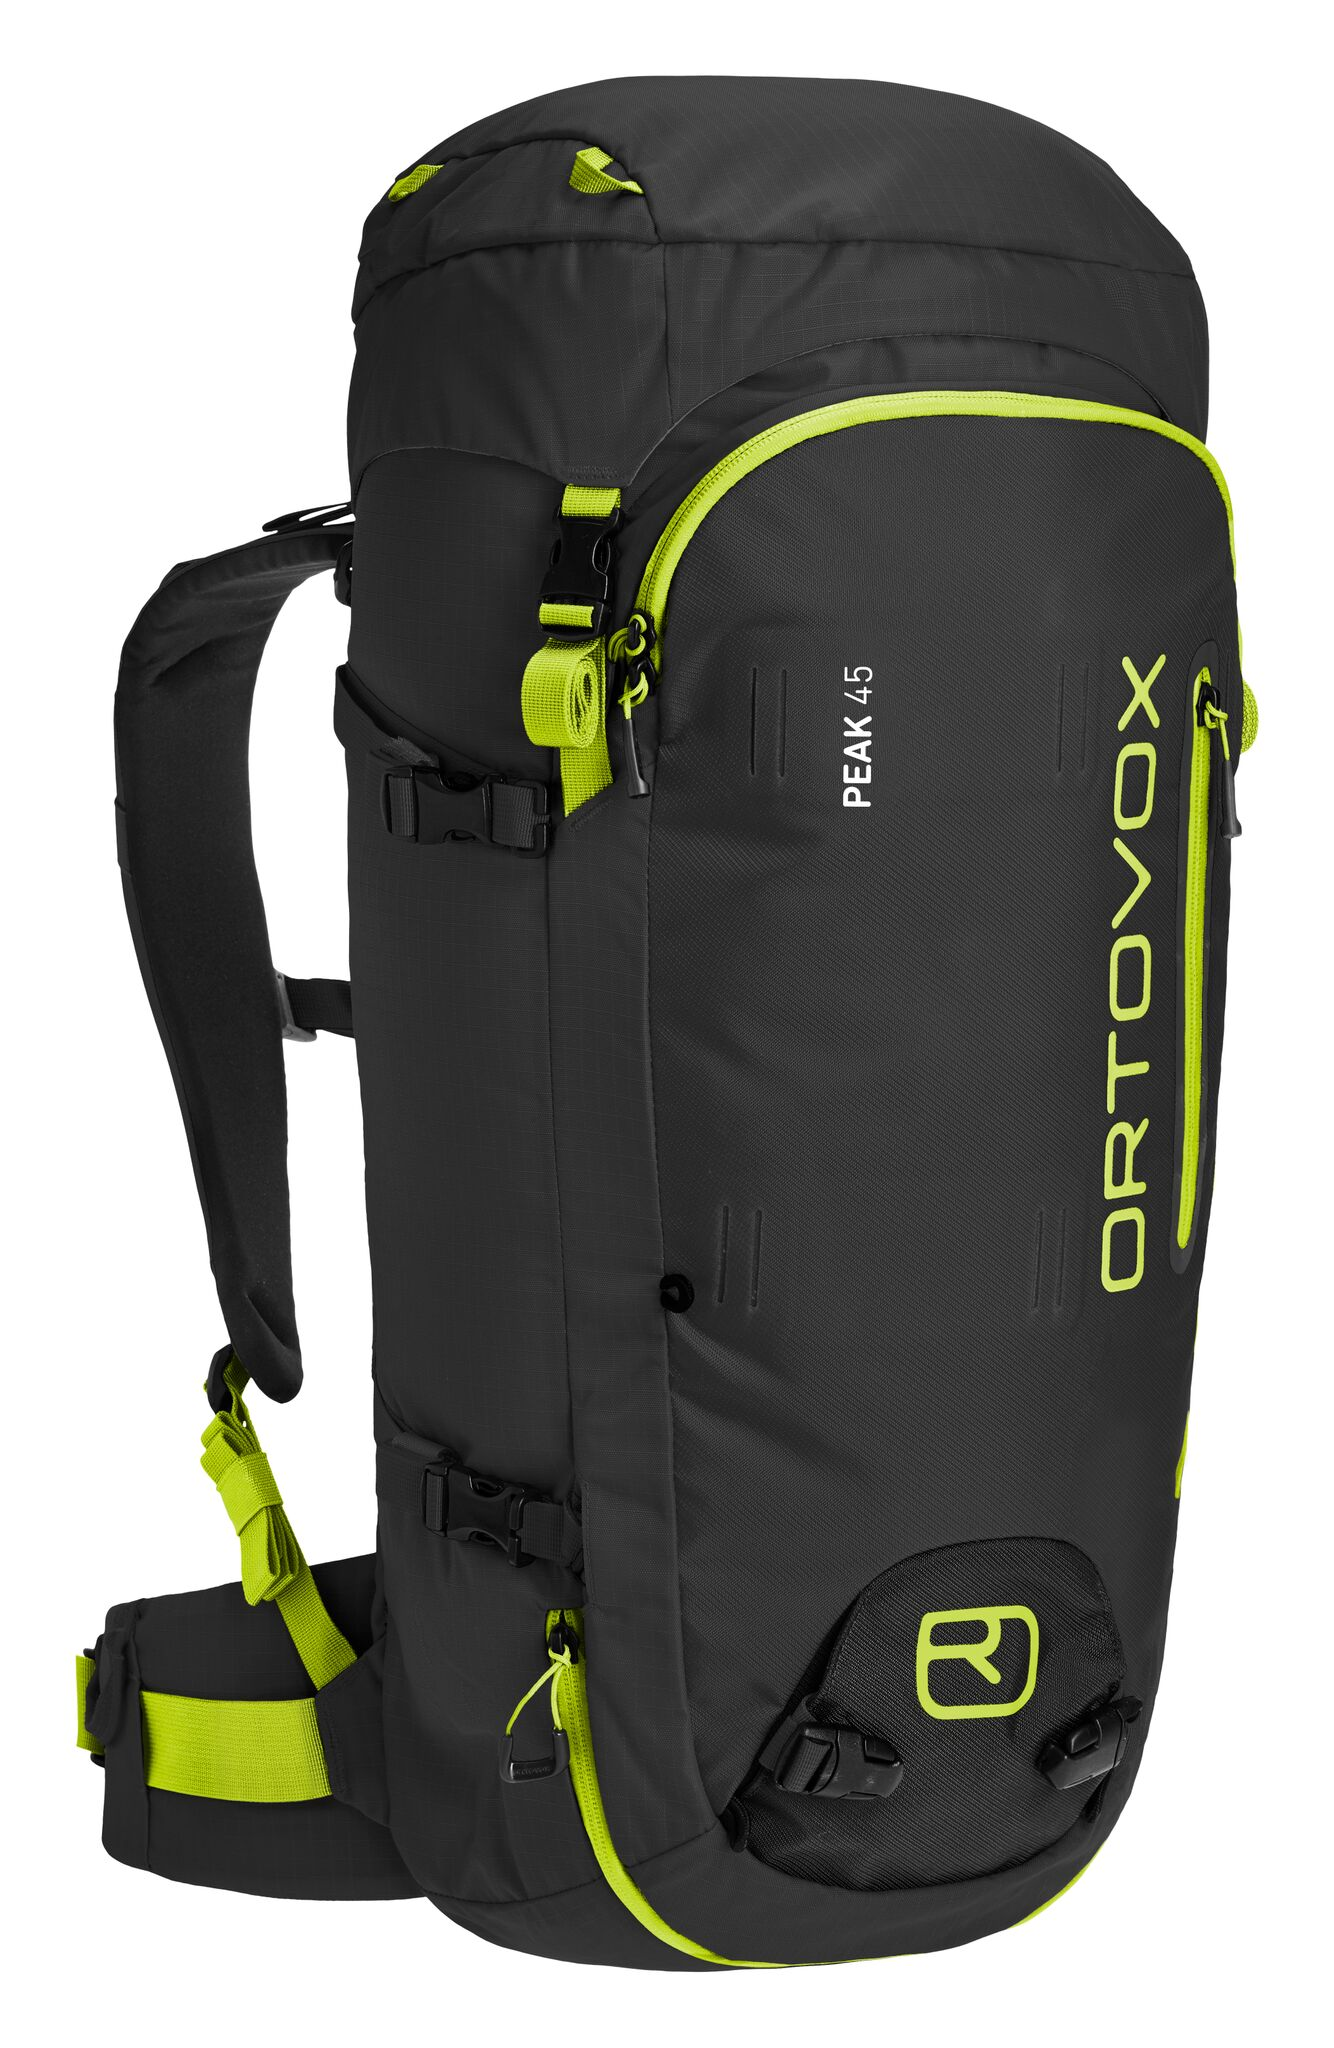 Ortovox Peak 45 in Black Anthracite - Front view displaying the zip pockets, attachments and shoulder and waist straps